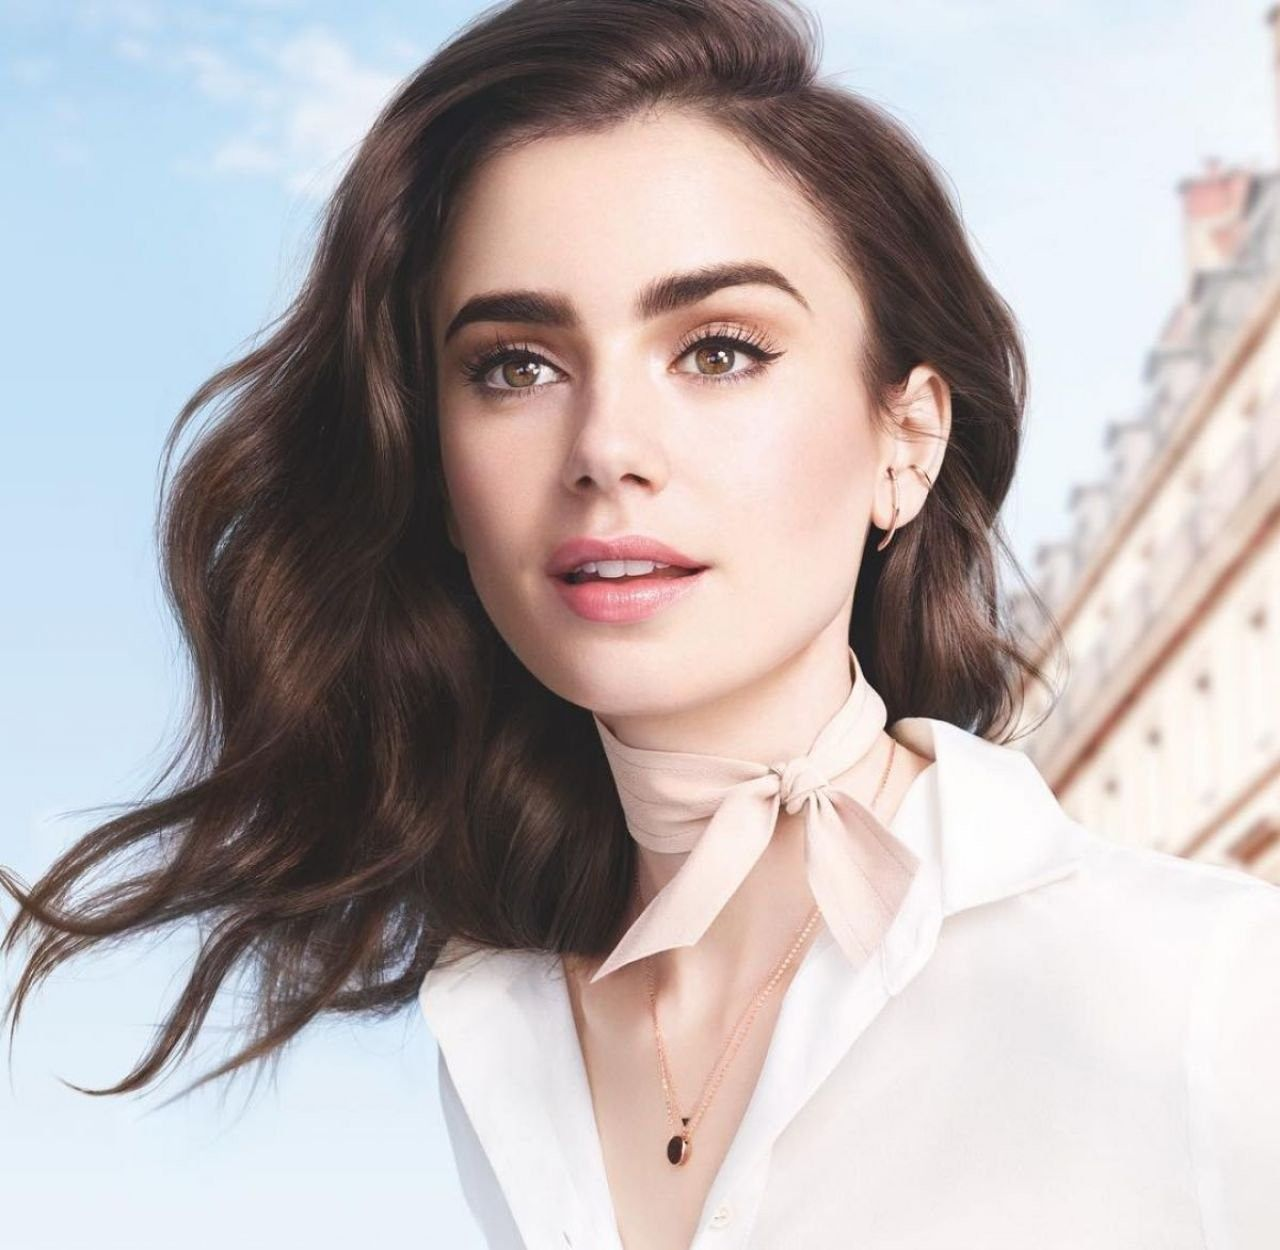 Pin by Hugo Montiel on Lily Collins | Lily collins style, Lily collins,  Lilly collins